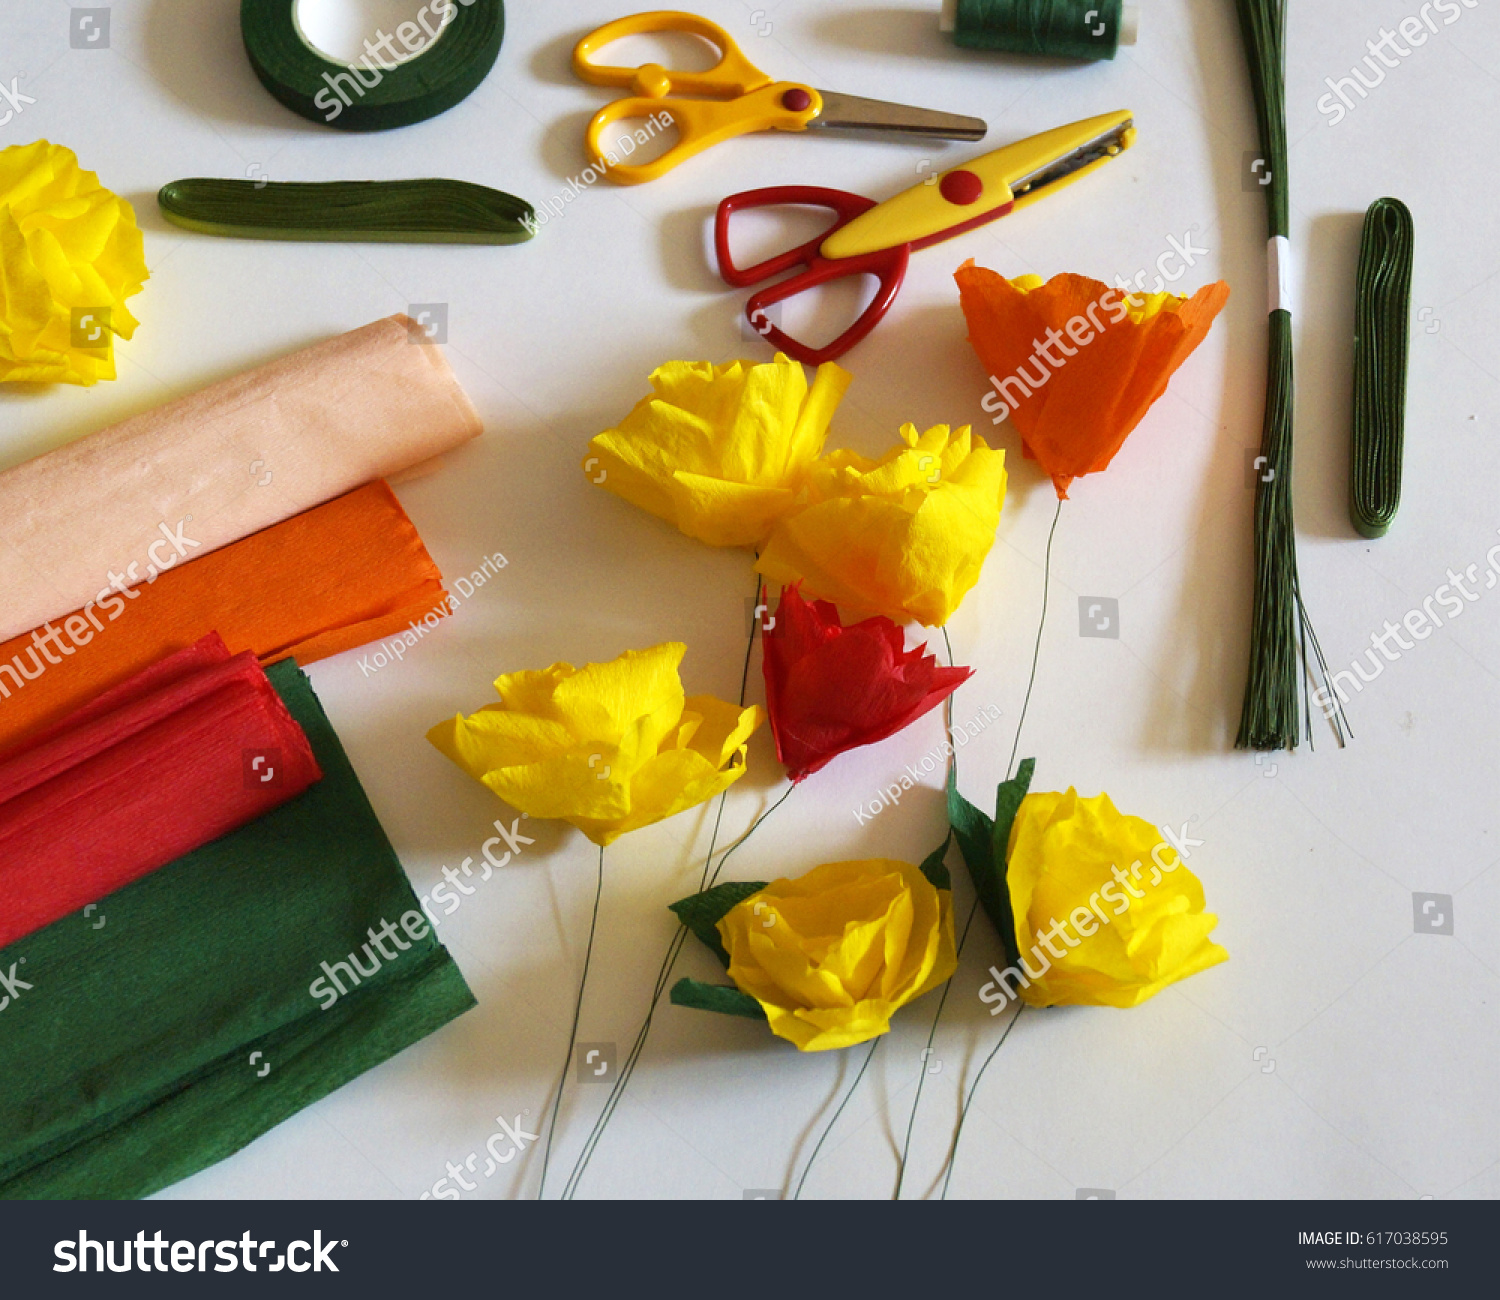 Materials Create Flowers Out Paper Handmade Stock Photo Royalty